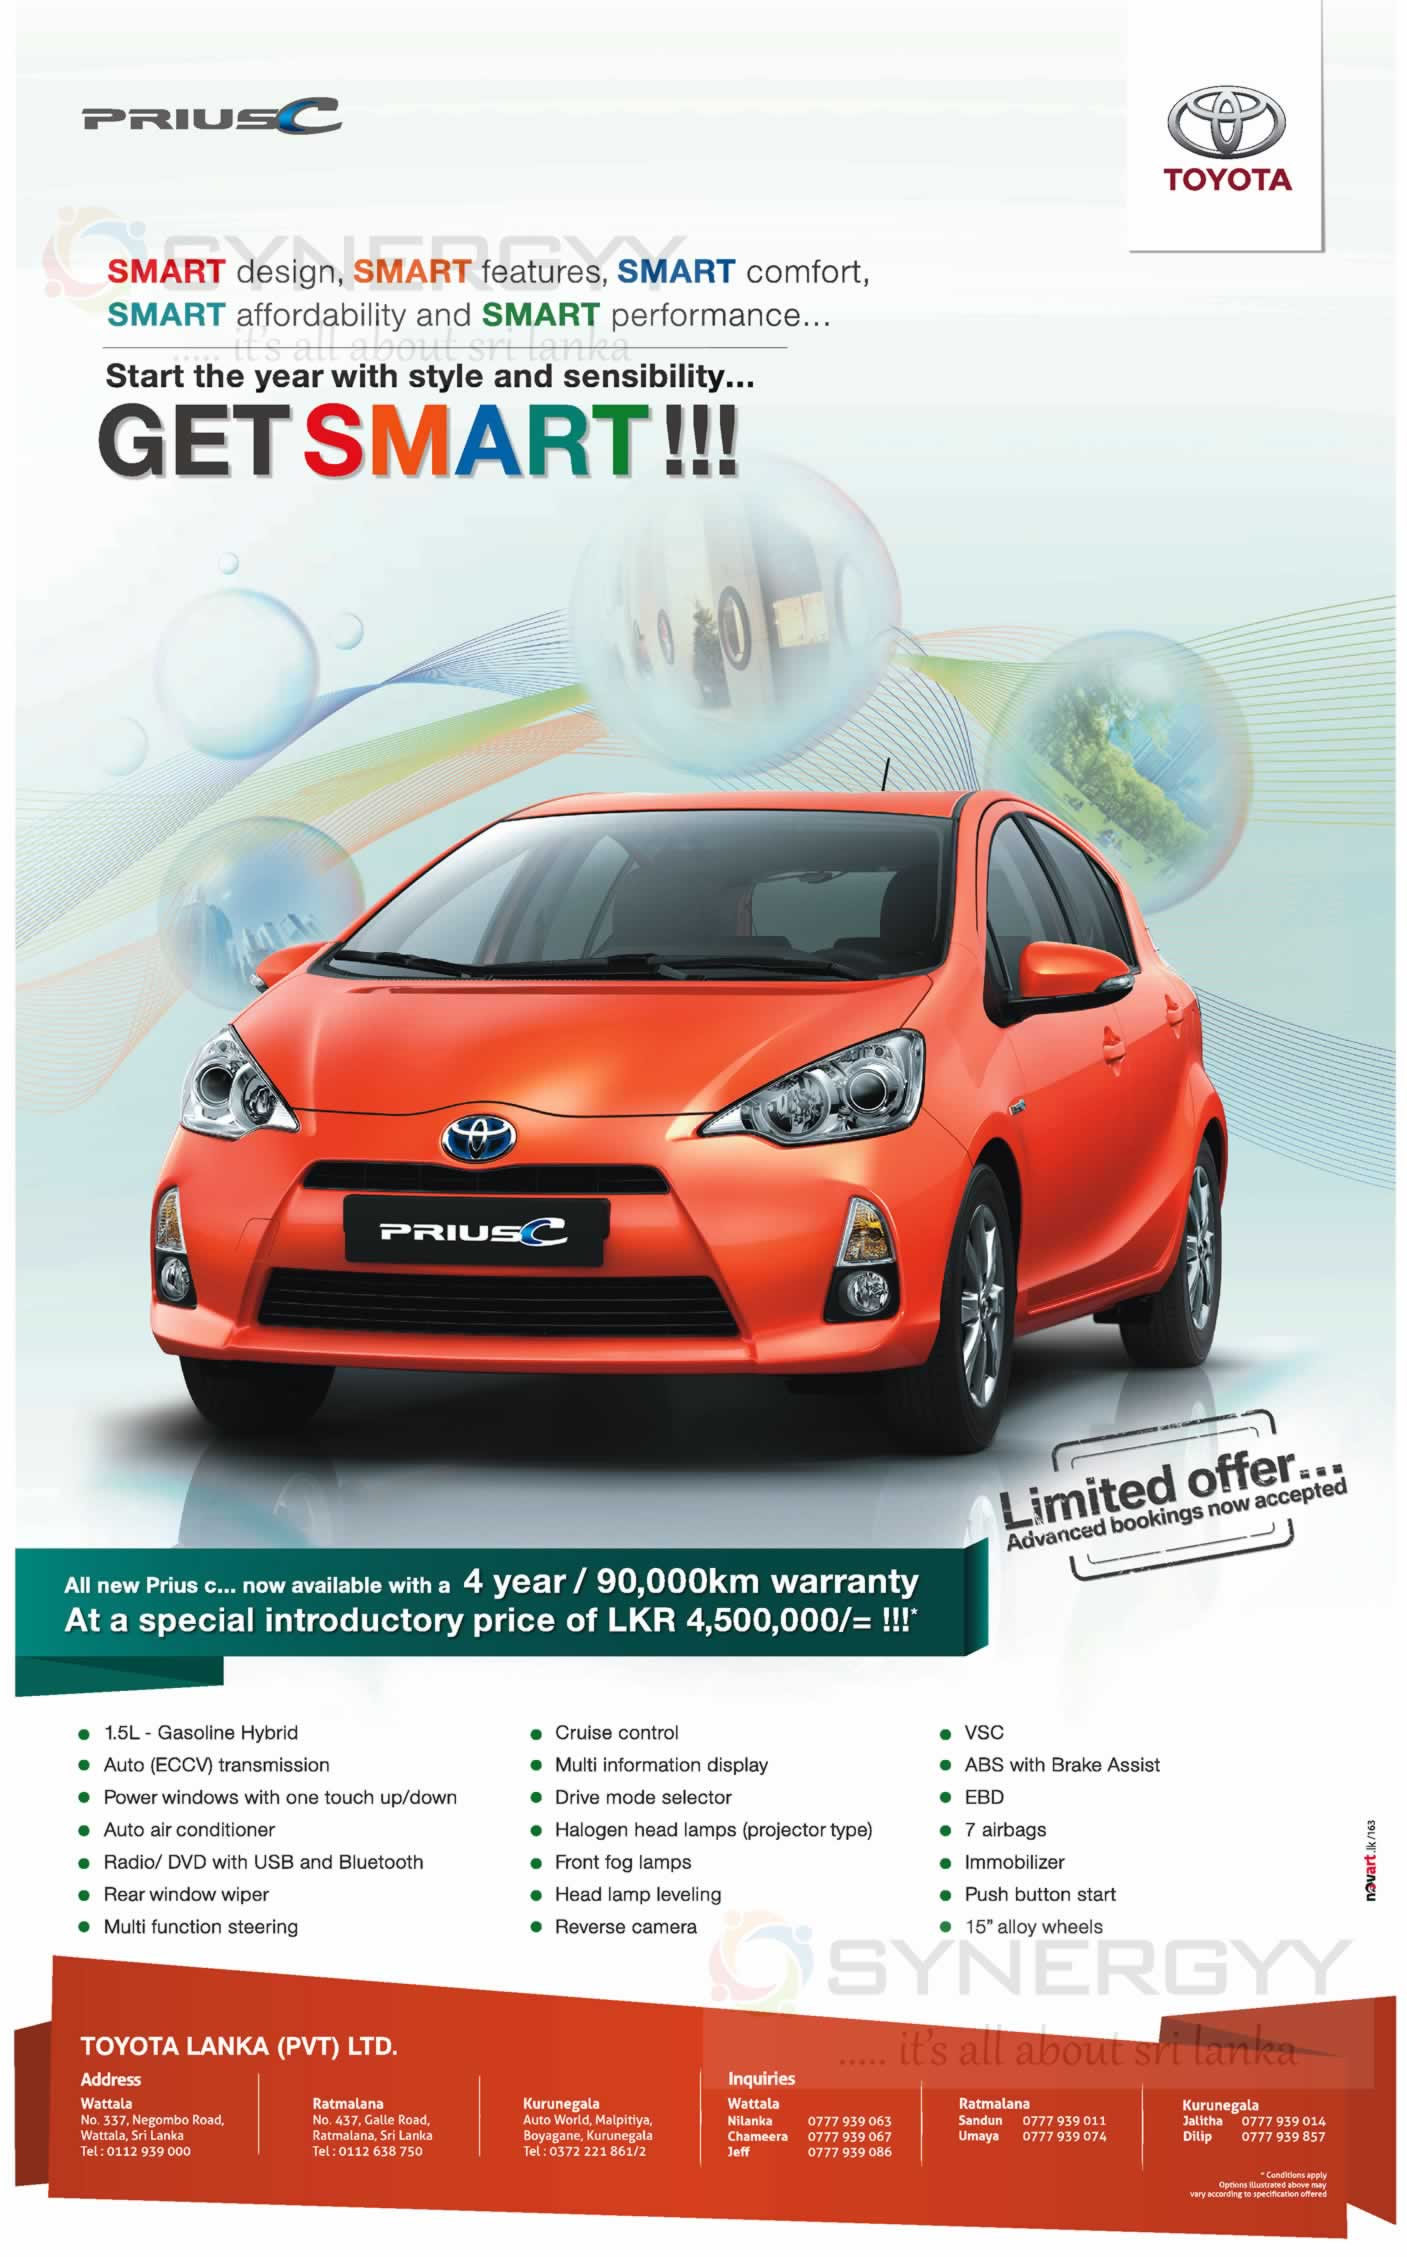 Toyota Prius C For Lkr 4 500 000 00 Now In Srilanka 171 Synergyy